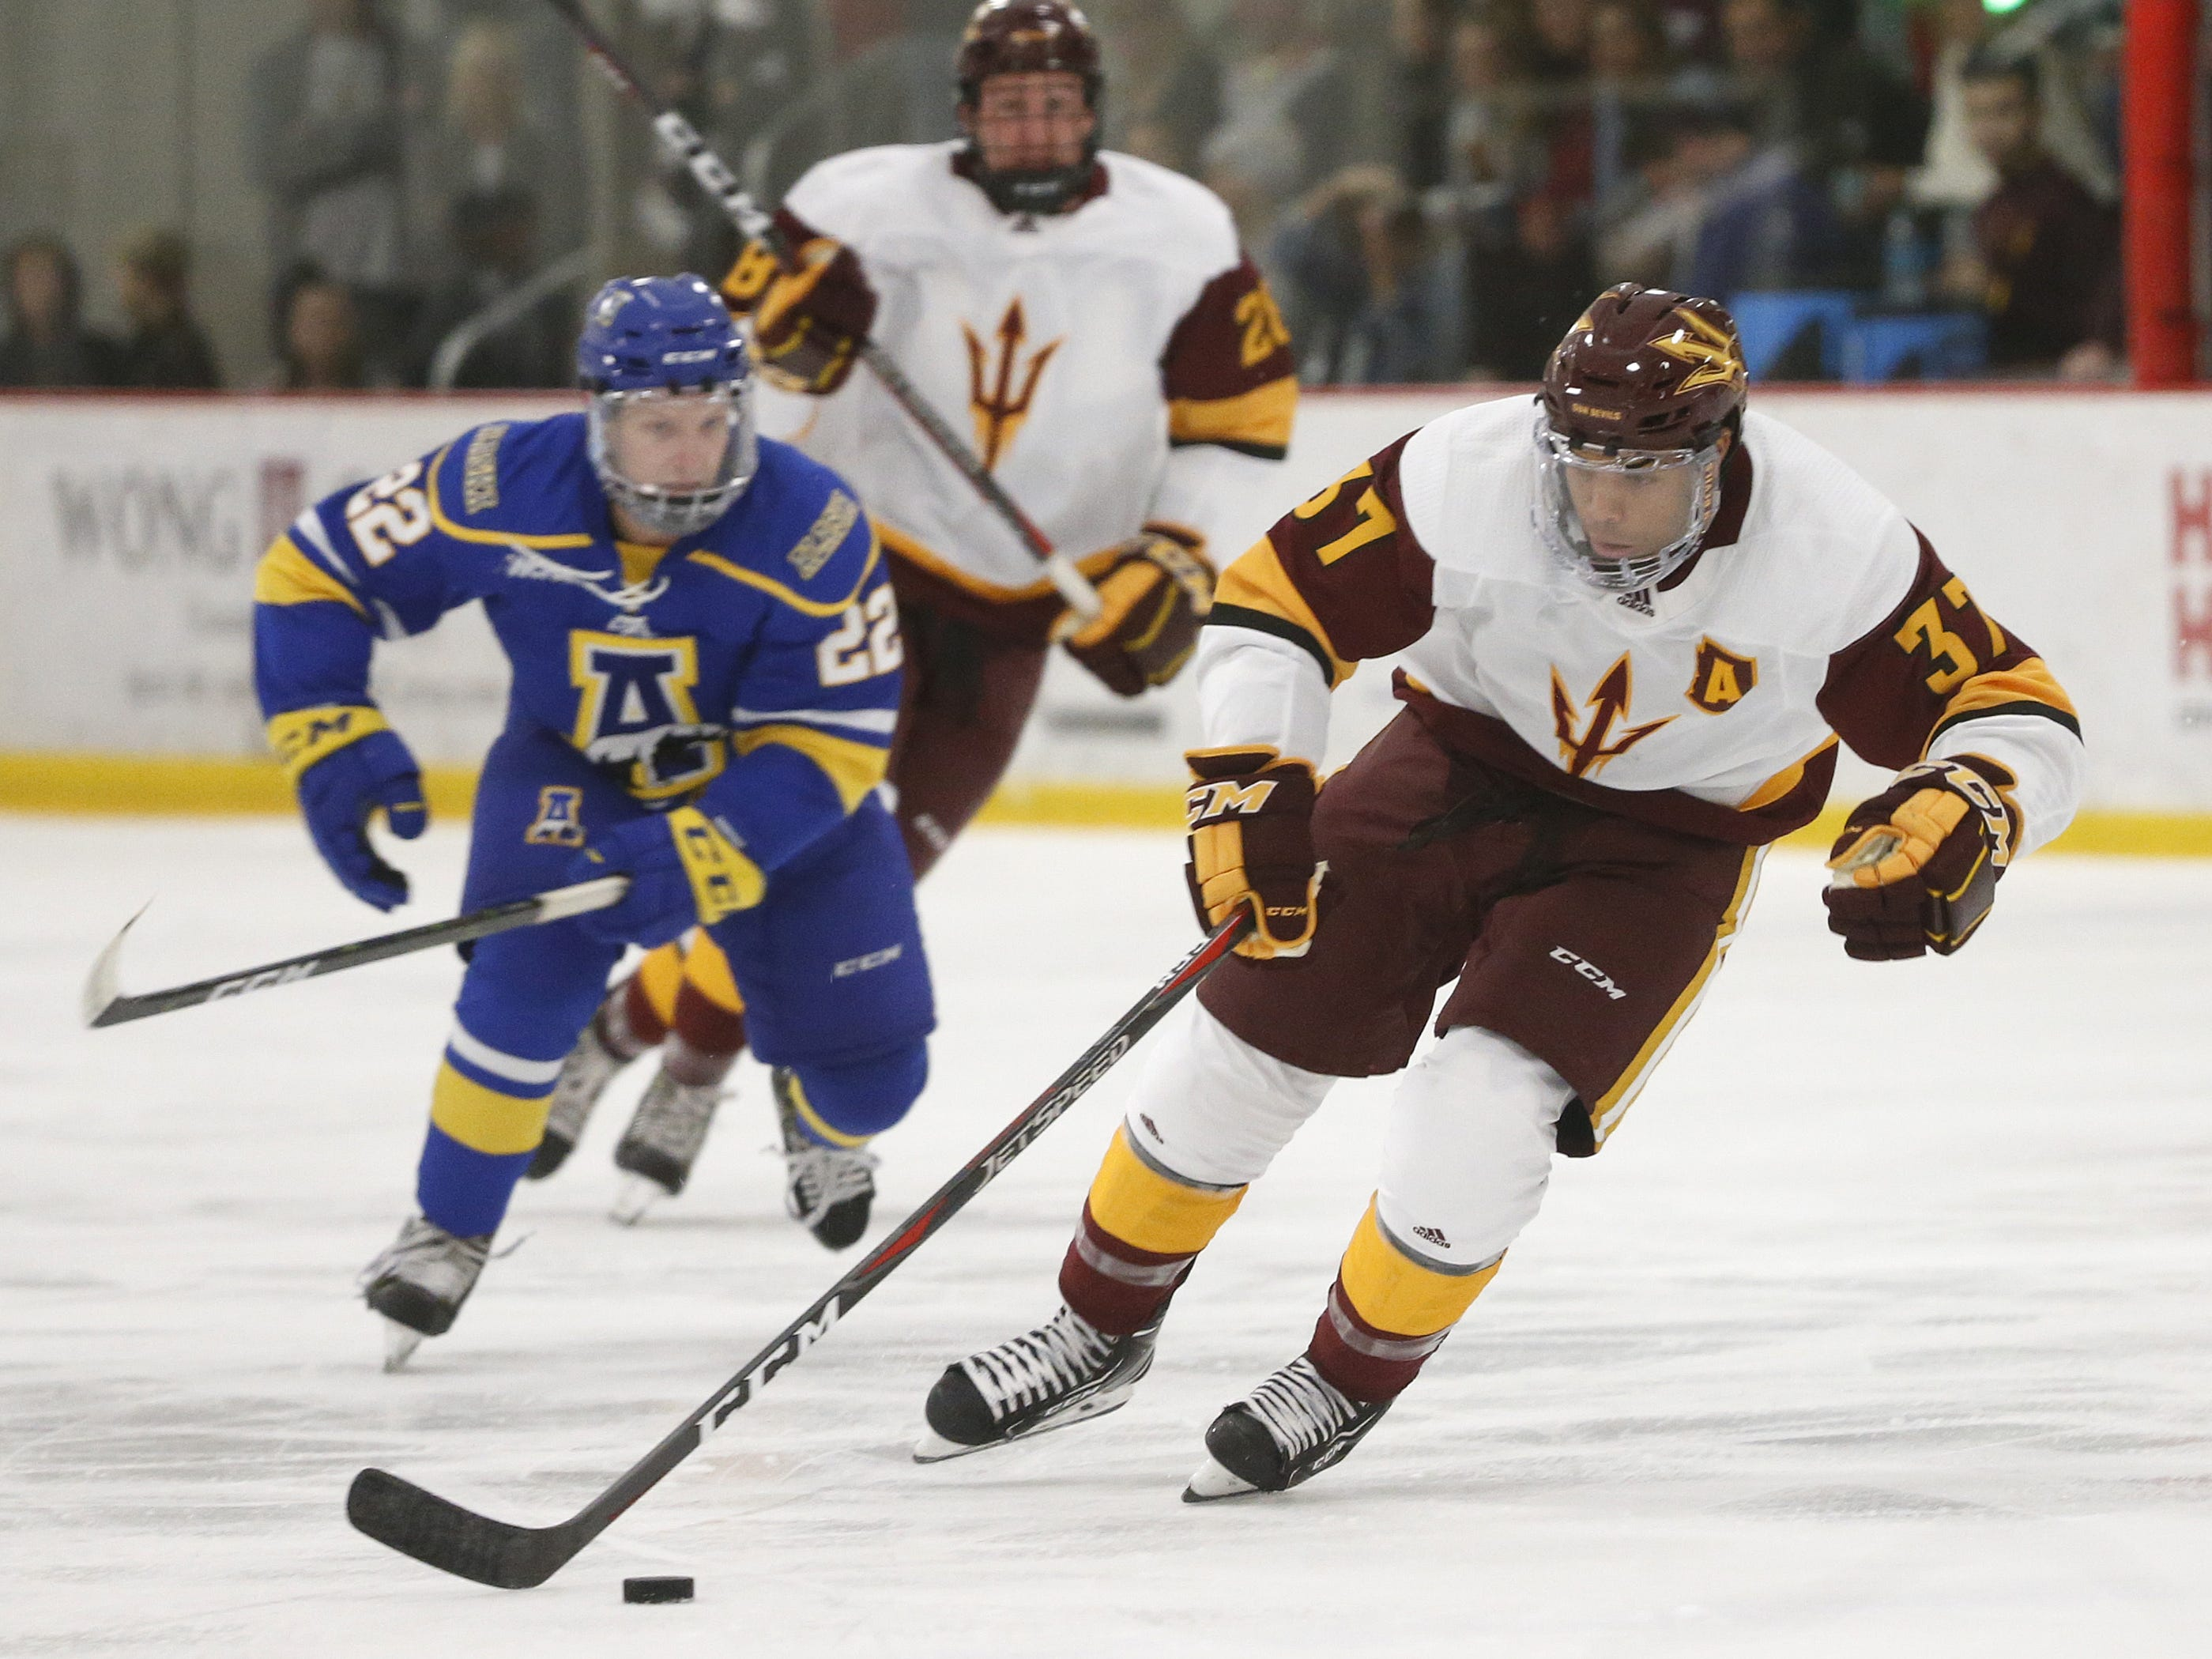 ASU's Dominic Garcia (37) skates up the ice against Alaska's Chad Staley (22) at Oceanside Ice Arena in Tempe, Ariz. on October 7, 2018.